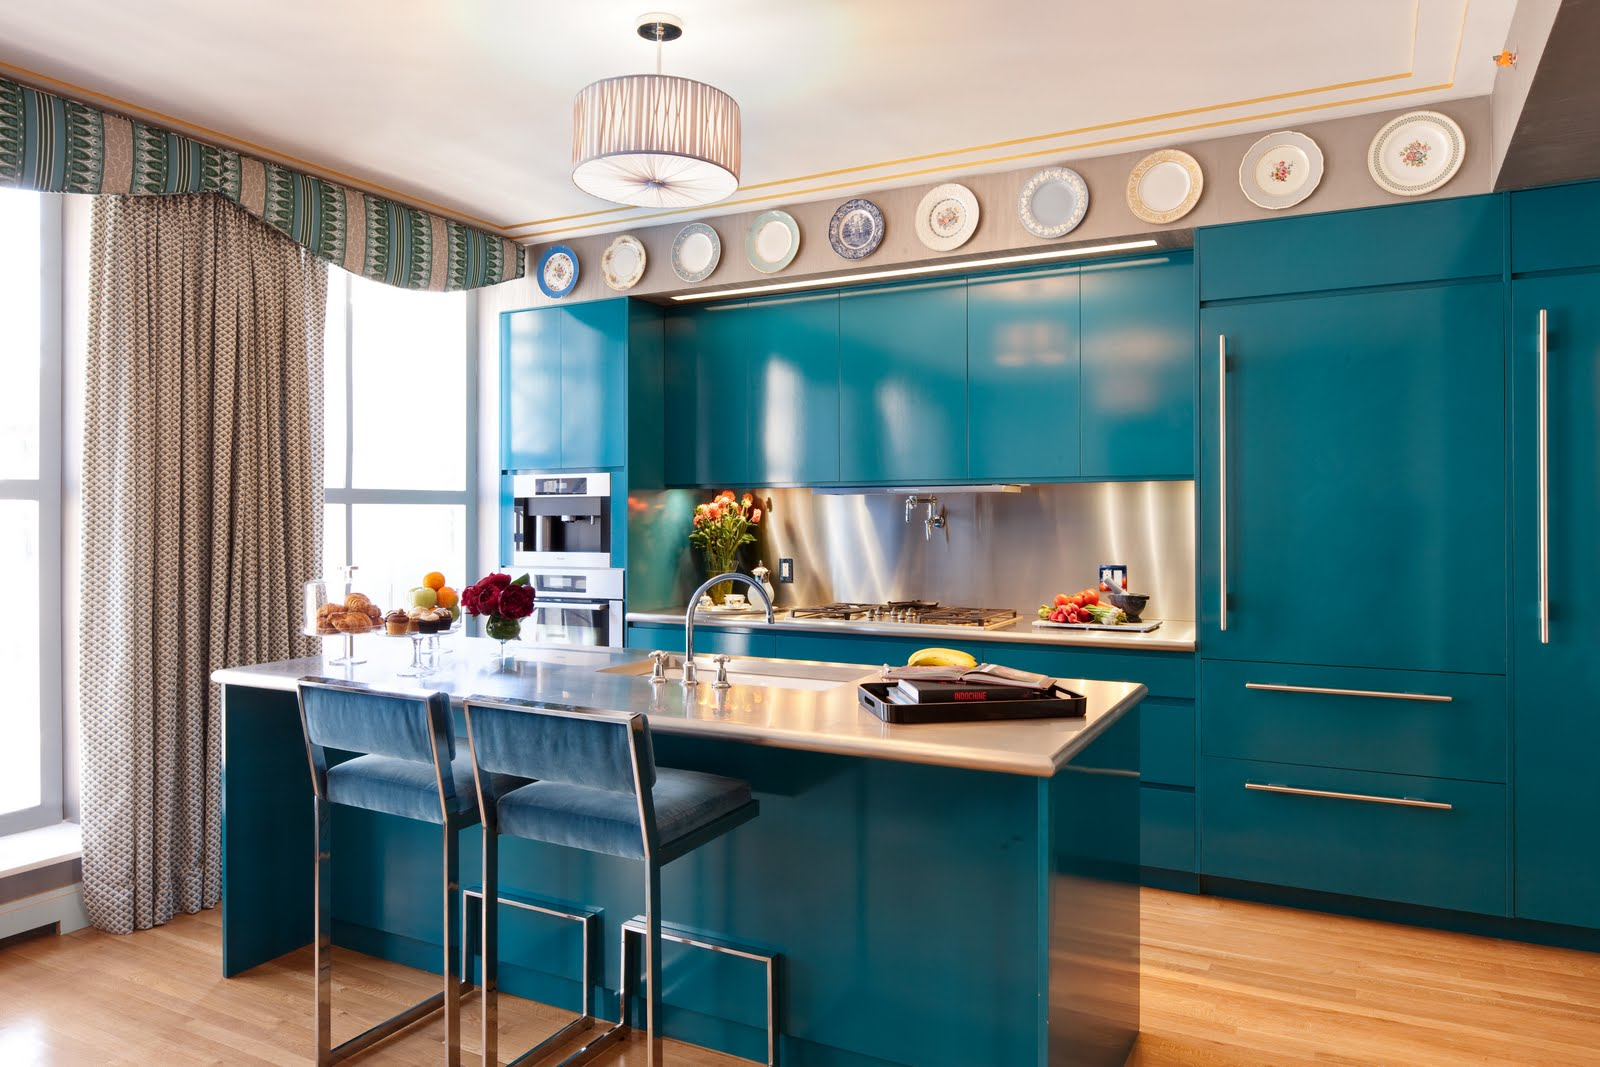 Metal Kitchen Cabinets Unique Barstools Design Plus Tunning Blue Paint Kitchen Cabinets Feat Stainless Steel Backsplash Also Drum Pendant Light Kitchen Cabinets a Fresh New Look